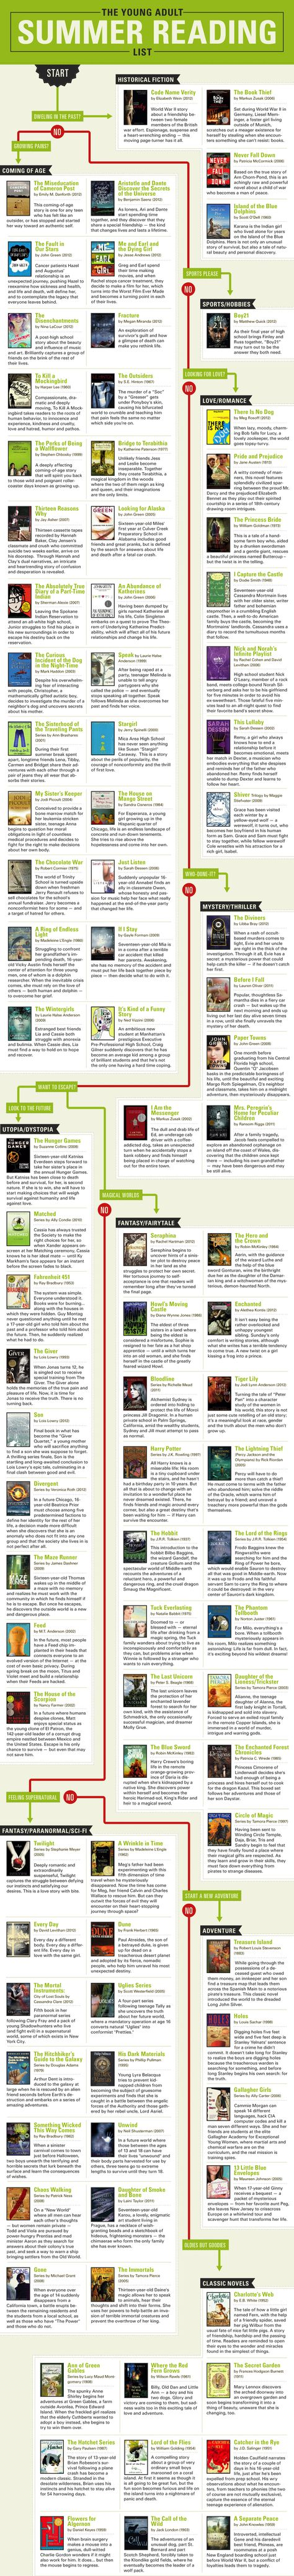 The 20 Best Images About Books On Pinterest There Ready Player Uglies Wiring Diagram One And Colleen Hoover